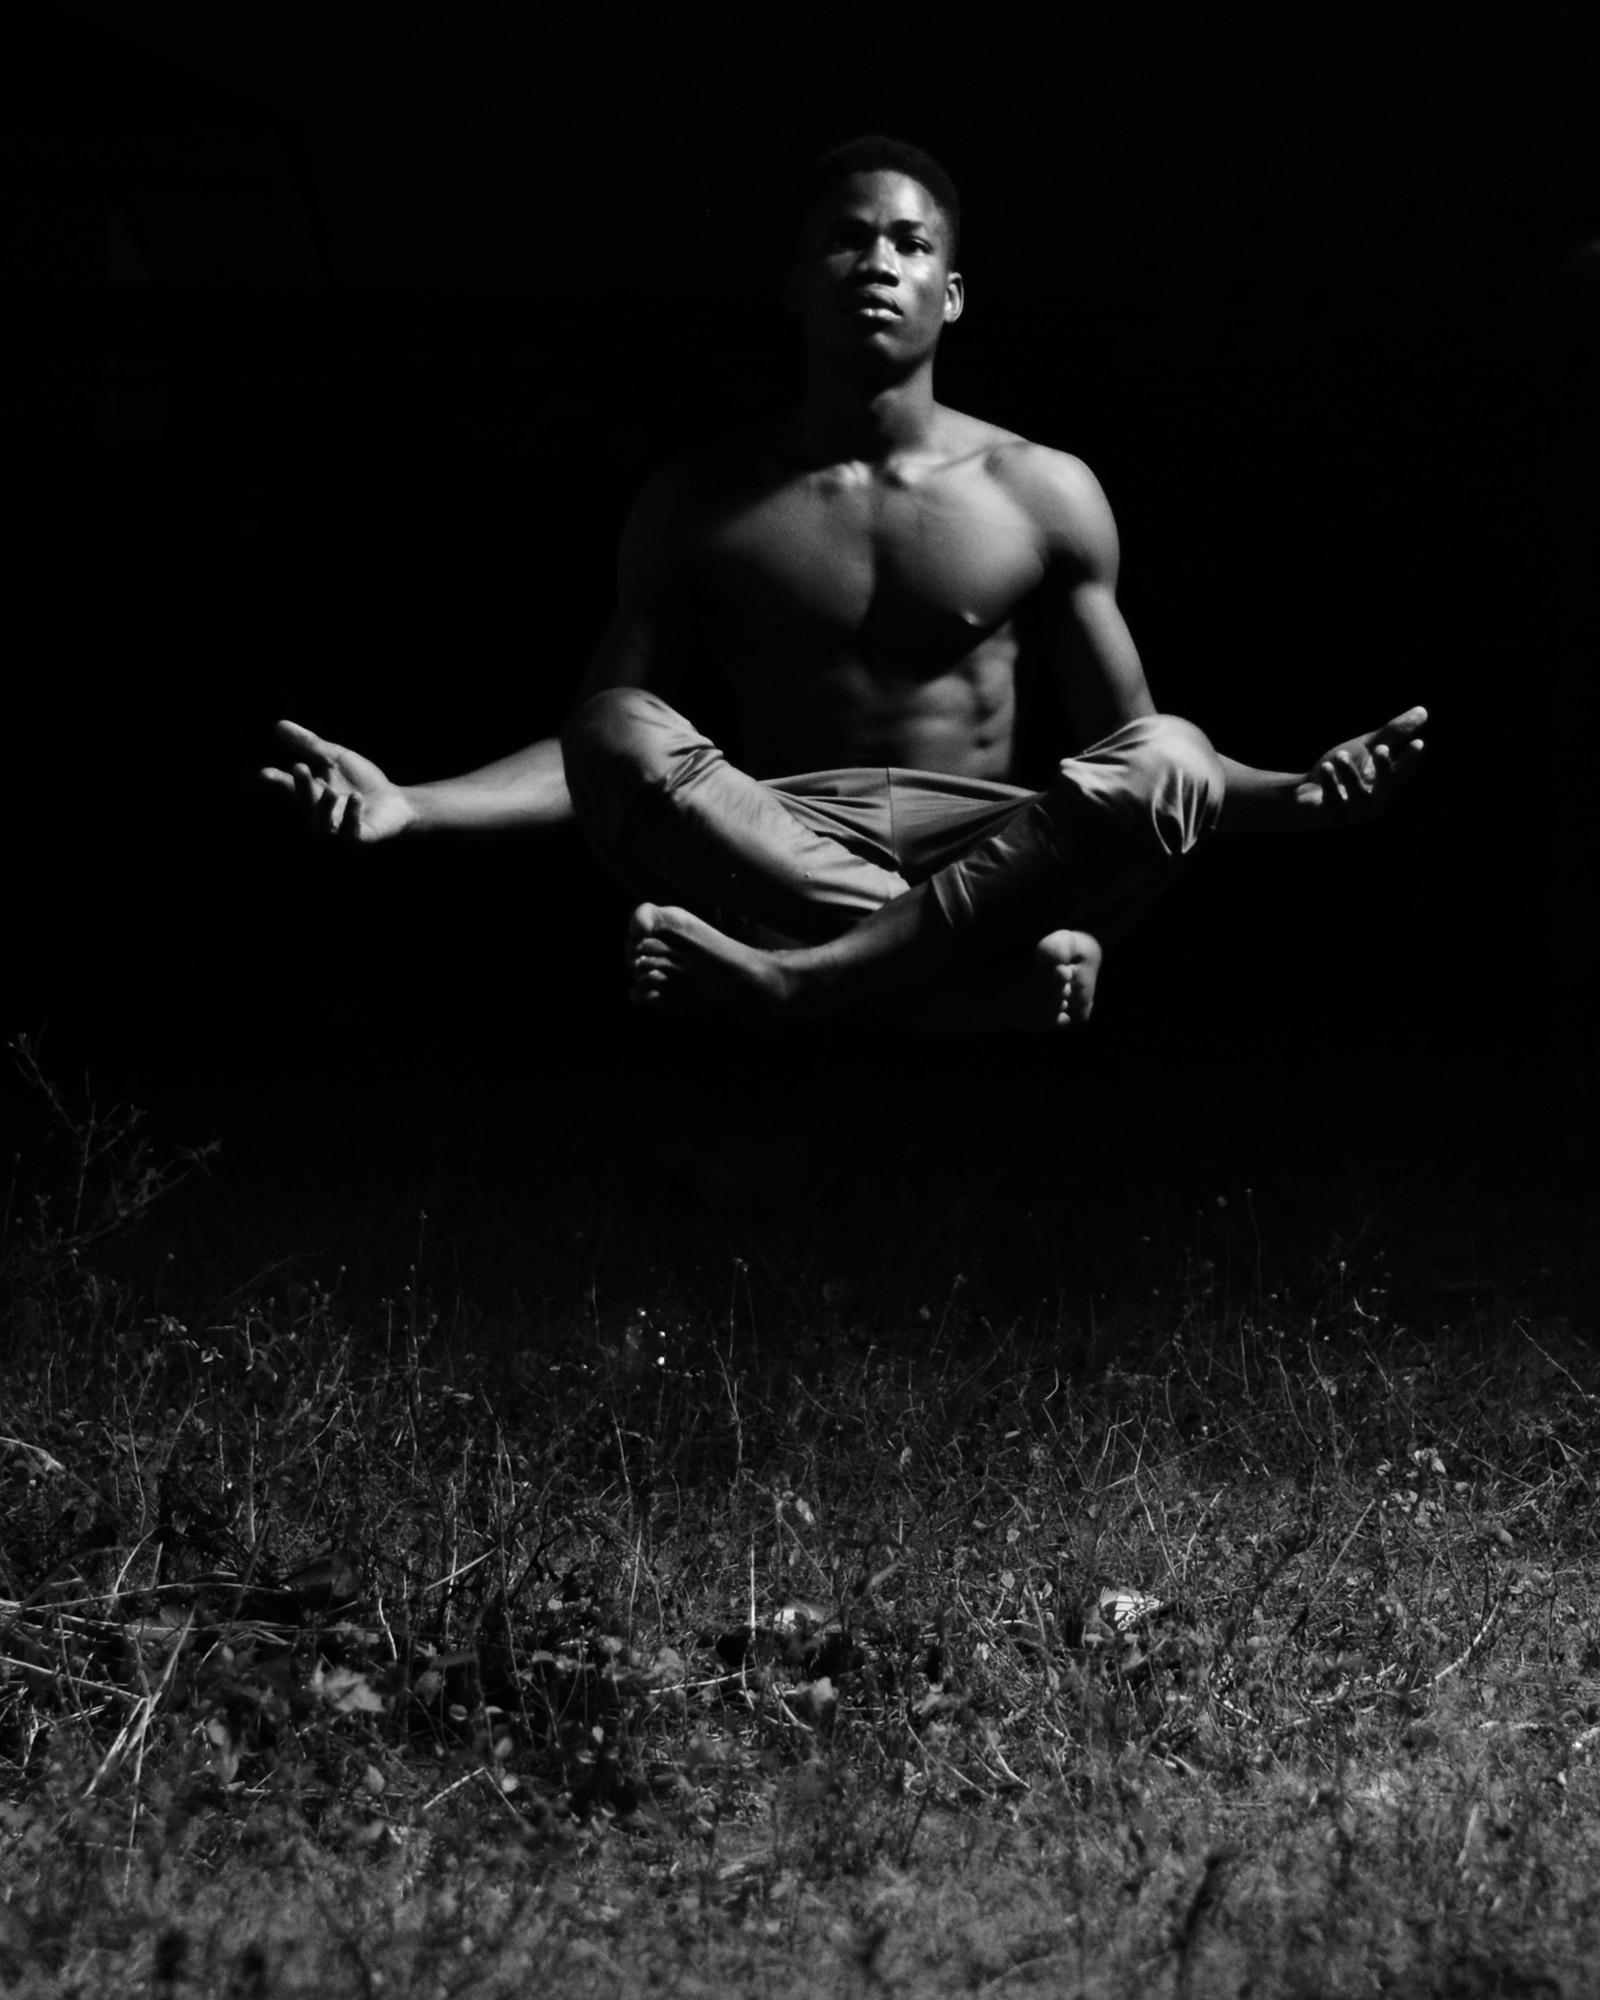 Black and white yoga pose photography